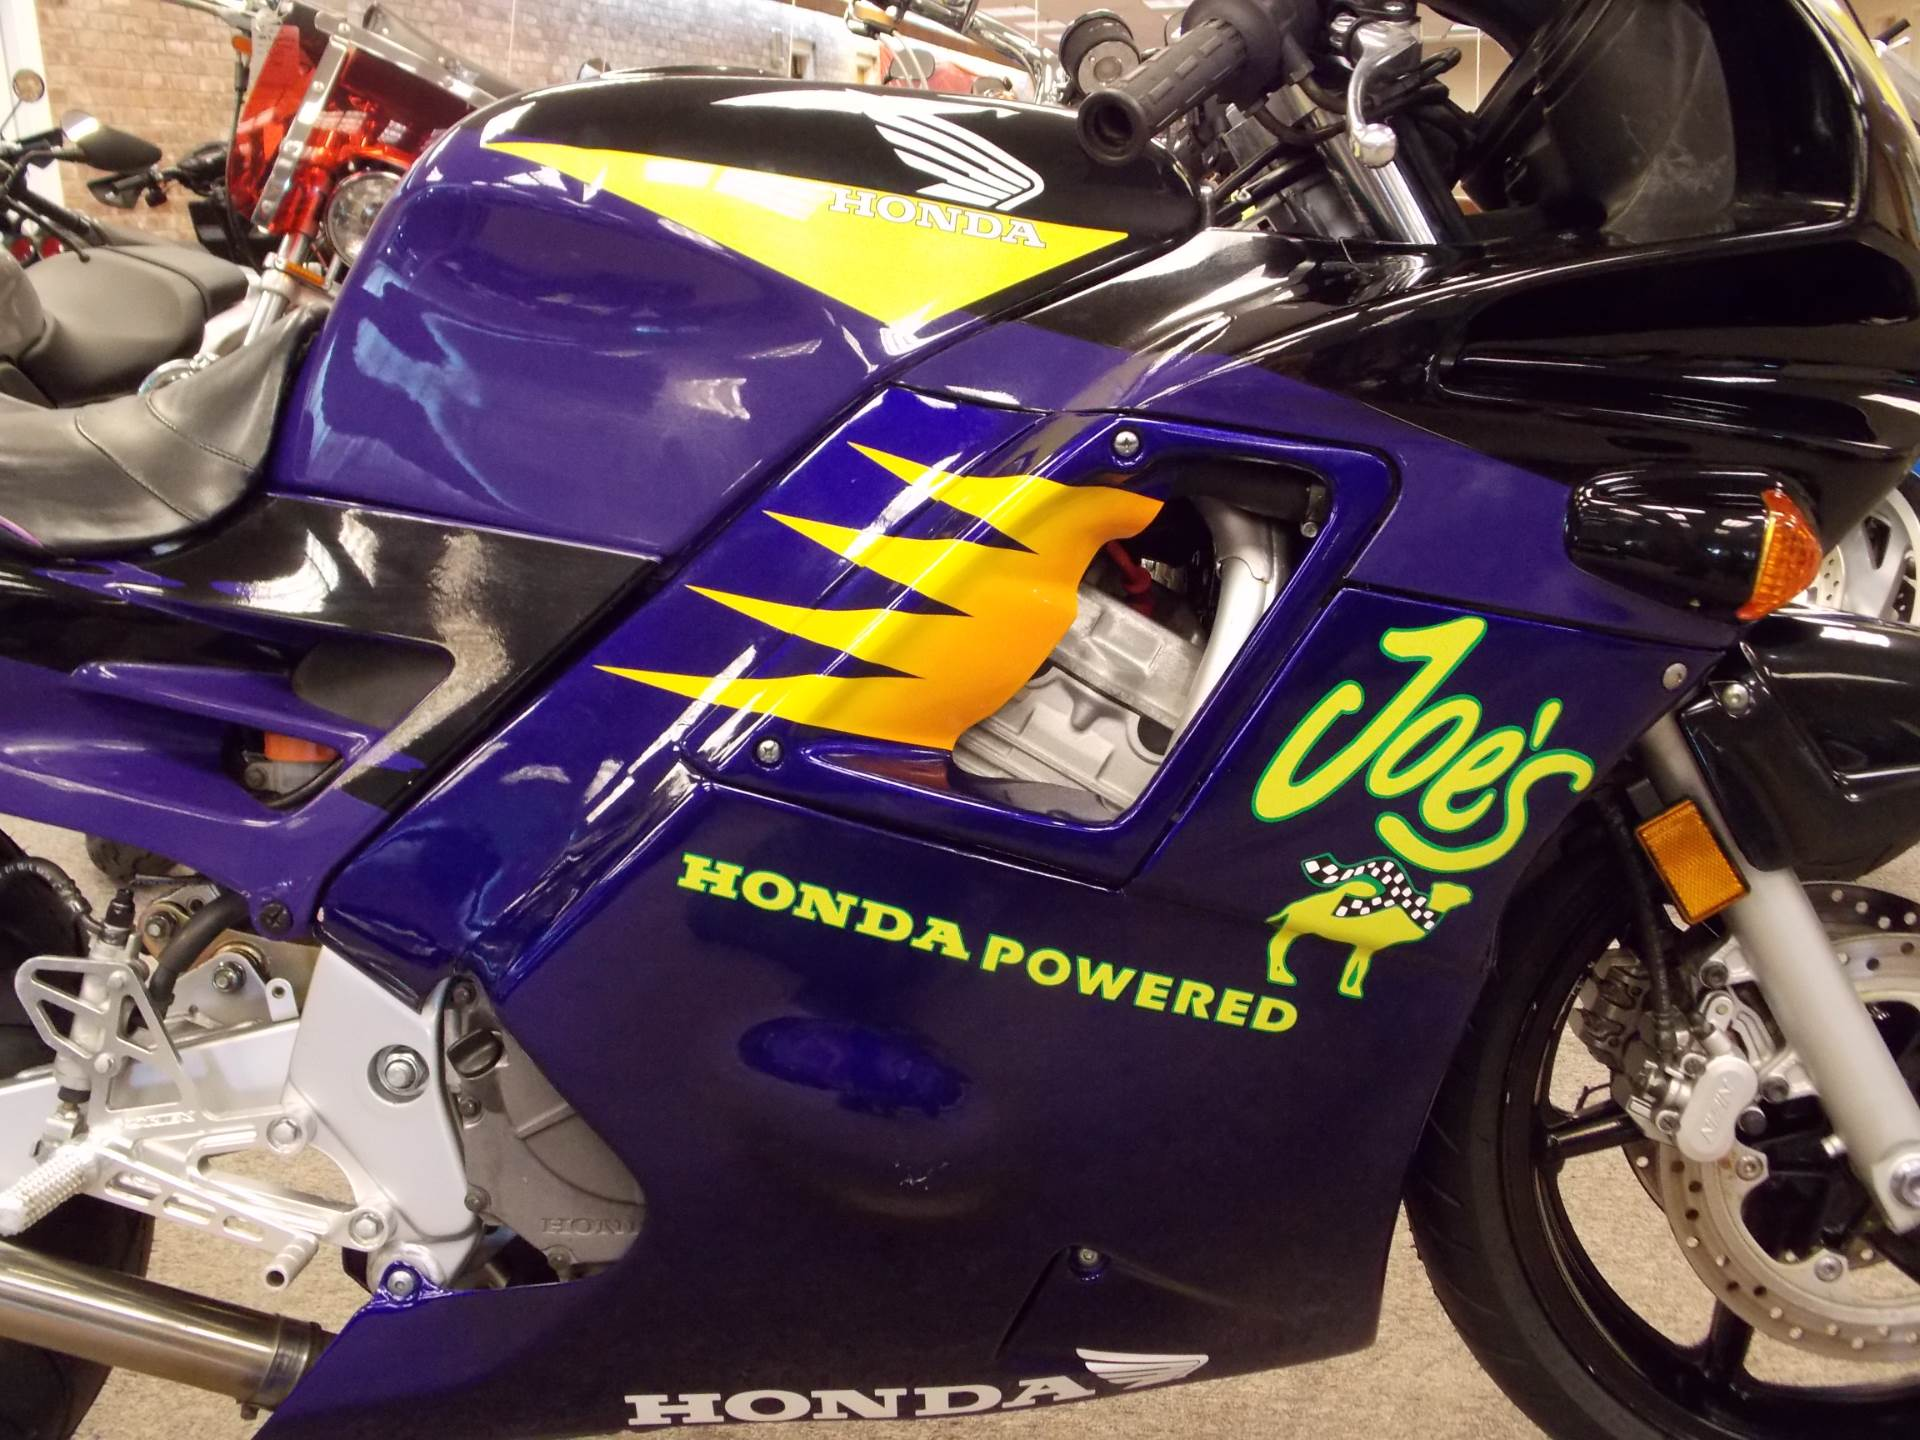 used 1994 honda cbr600f2 motorcycles in statesville, nc | stock